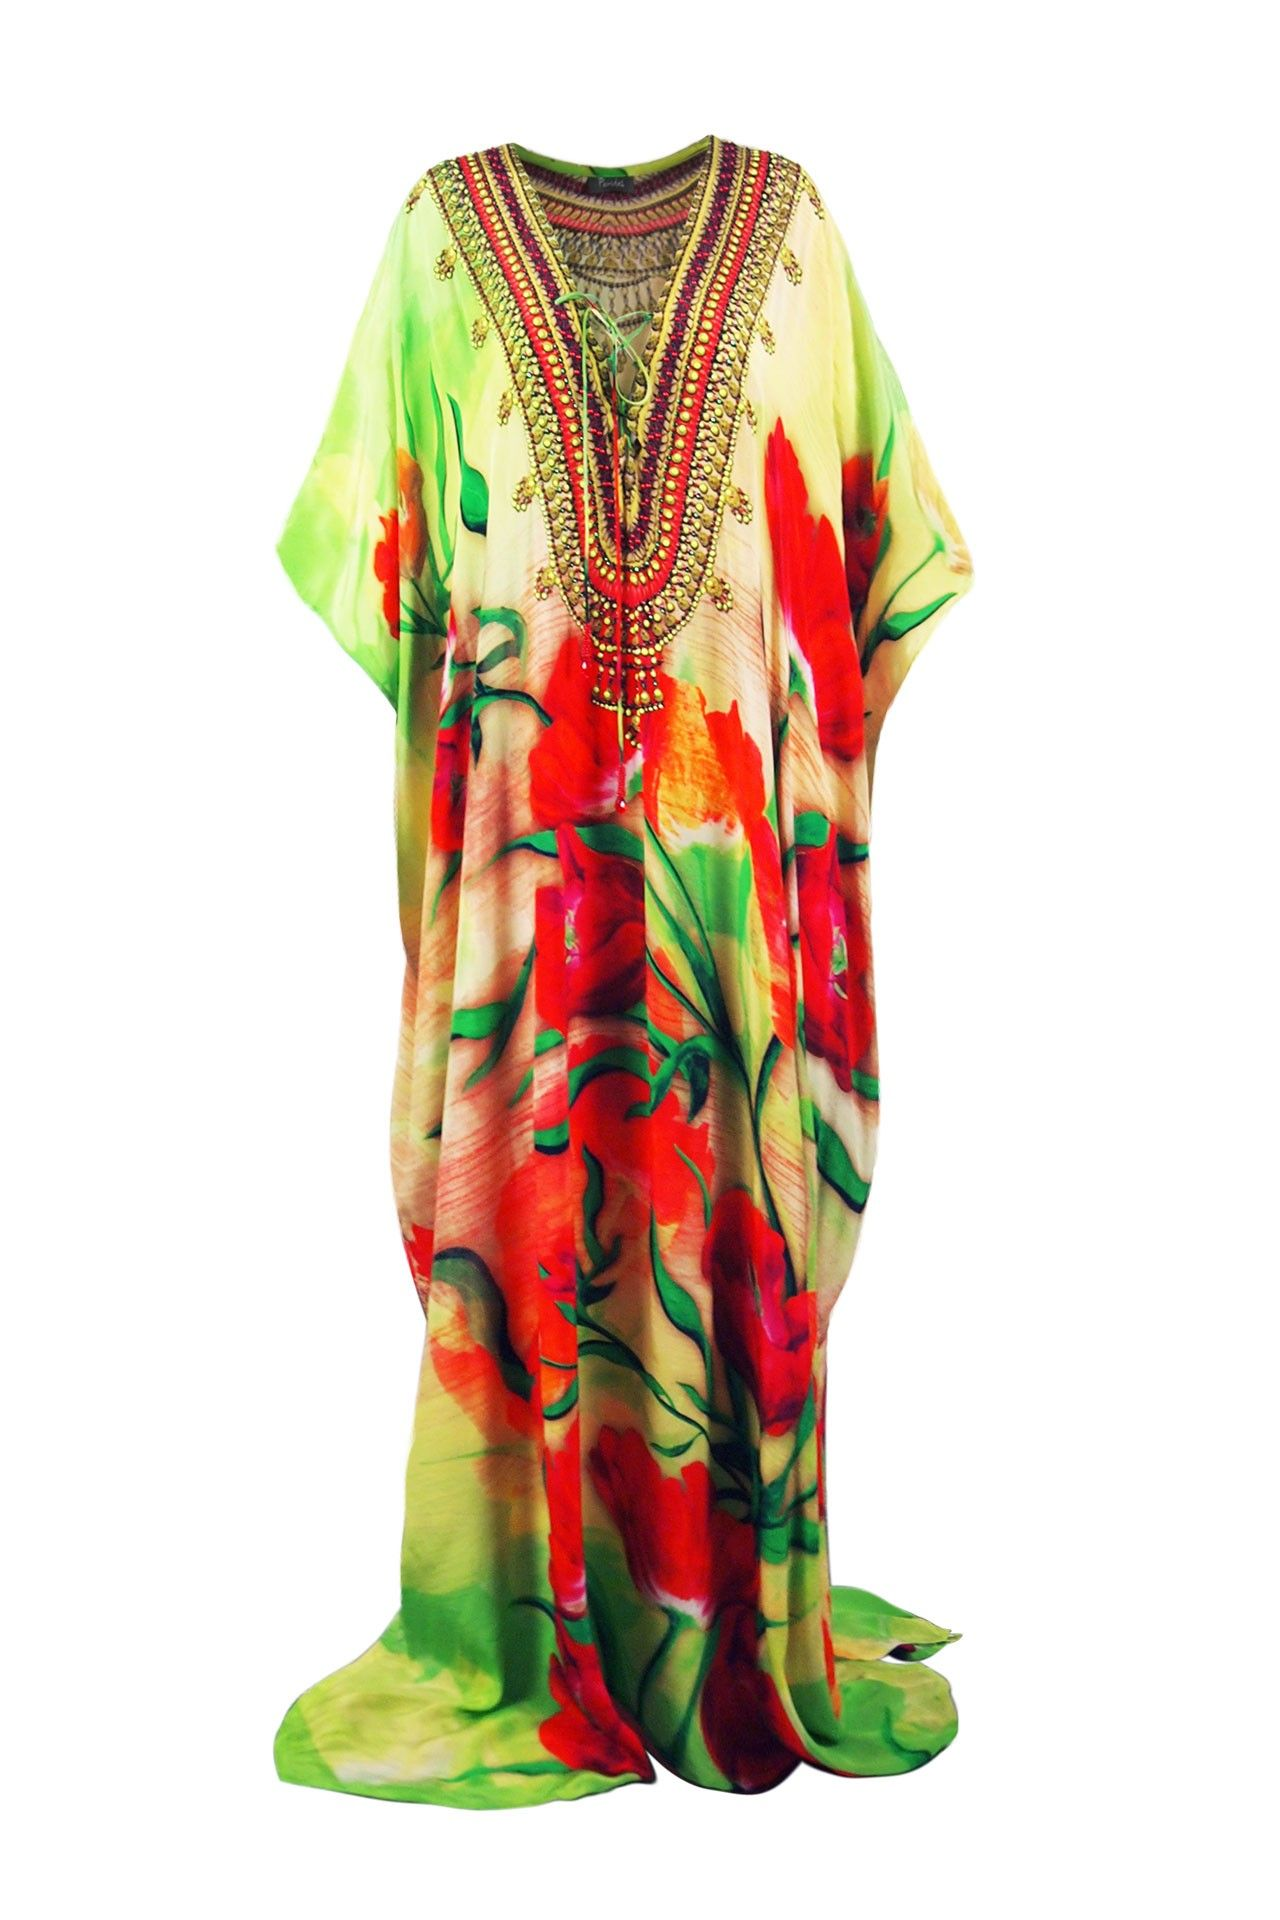 90f8944b113a Kaftan Maxi Dress - Designer Kaftan Dresses | Lace Up Kaftans For Women -  Shahida Parides